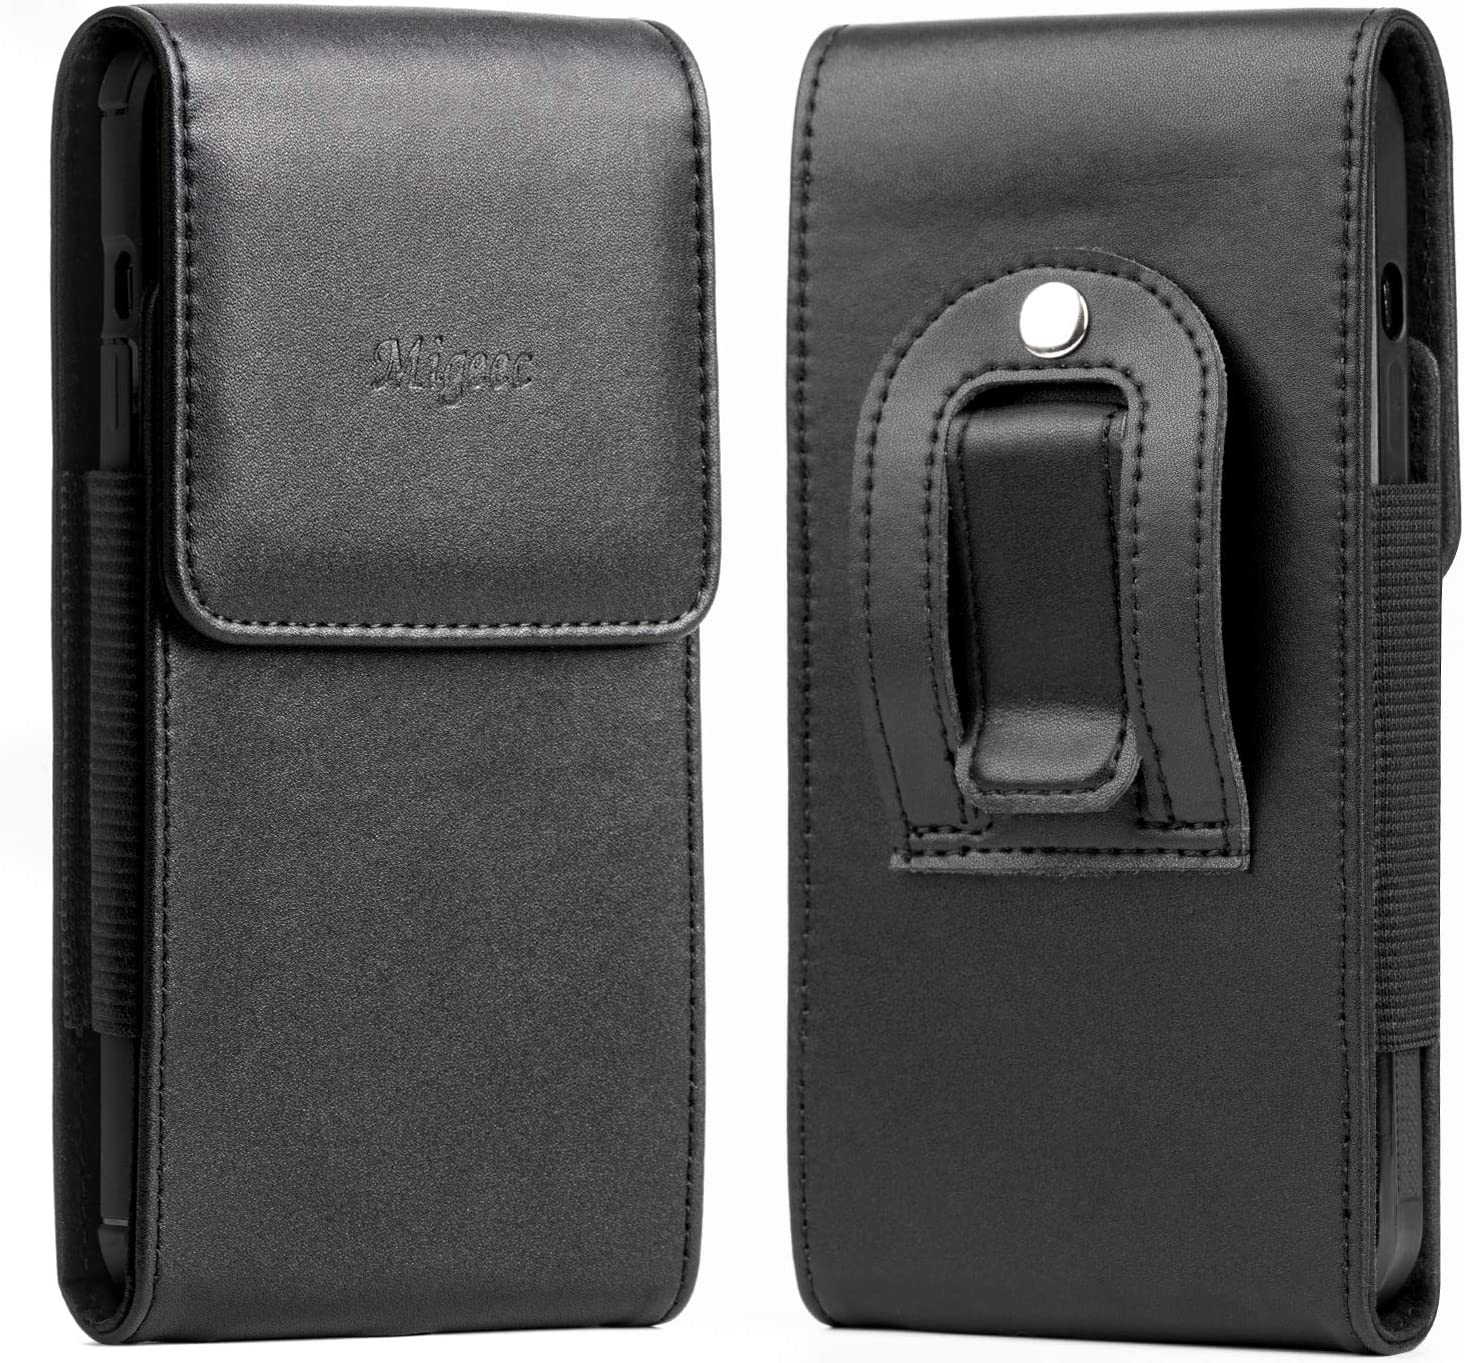 Migeec Cell Phone Pouch Holster Case with Belt Clip and Belt Loop [Magnetic Closure] PU Leather Case Compatible with iPhone/Galaxy/Stylo/Android Phone (Up to 6.5 inch Device) (Black)